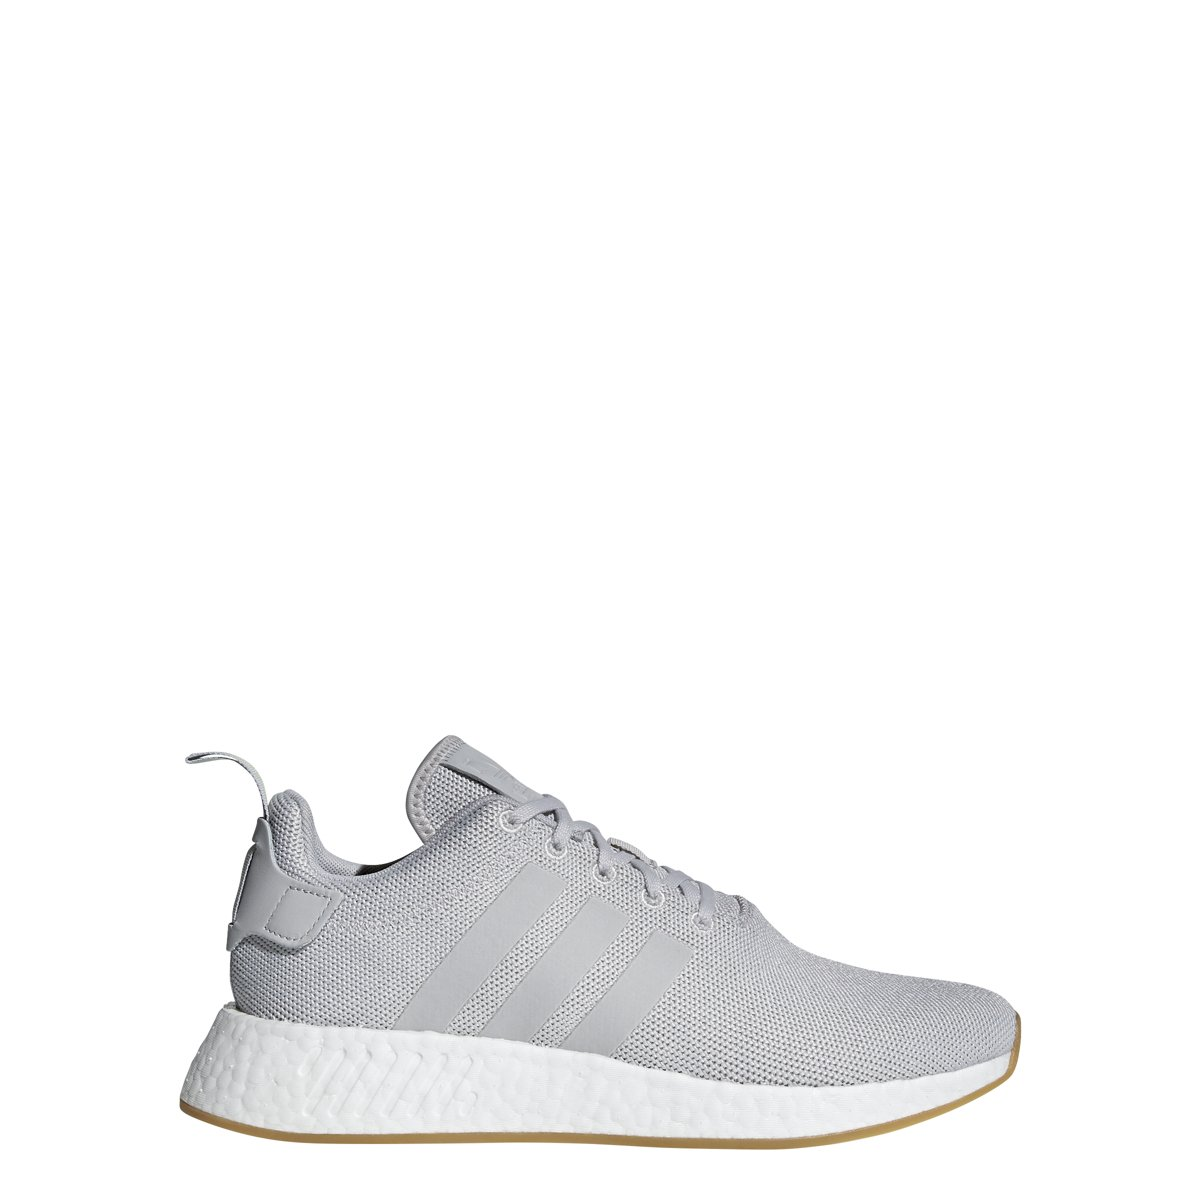 new arrival bcfe5 62df4 Adidas NMD R2 - Cq2403 - Size 10.5: Amazon.in: Shoes & Handbags